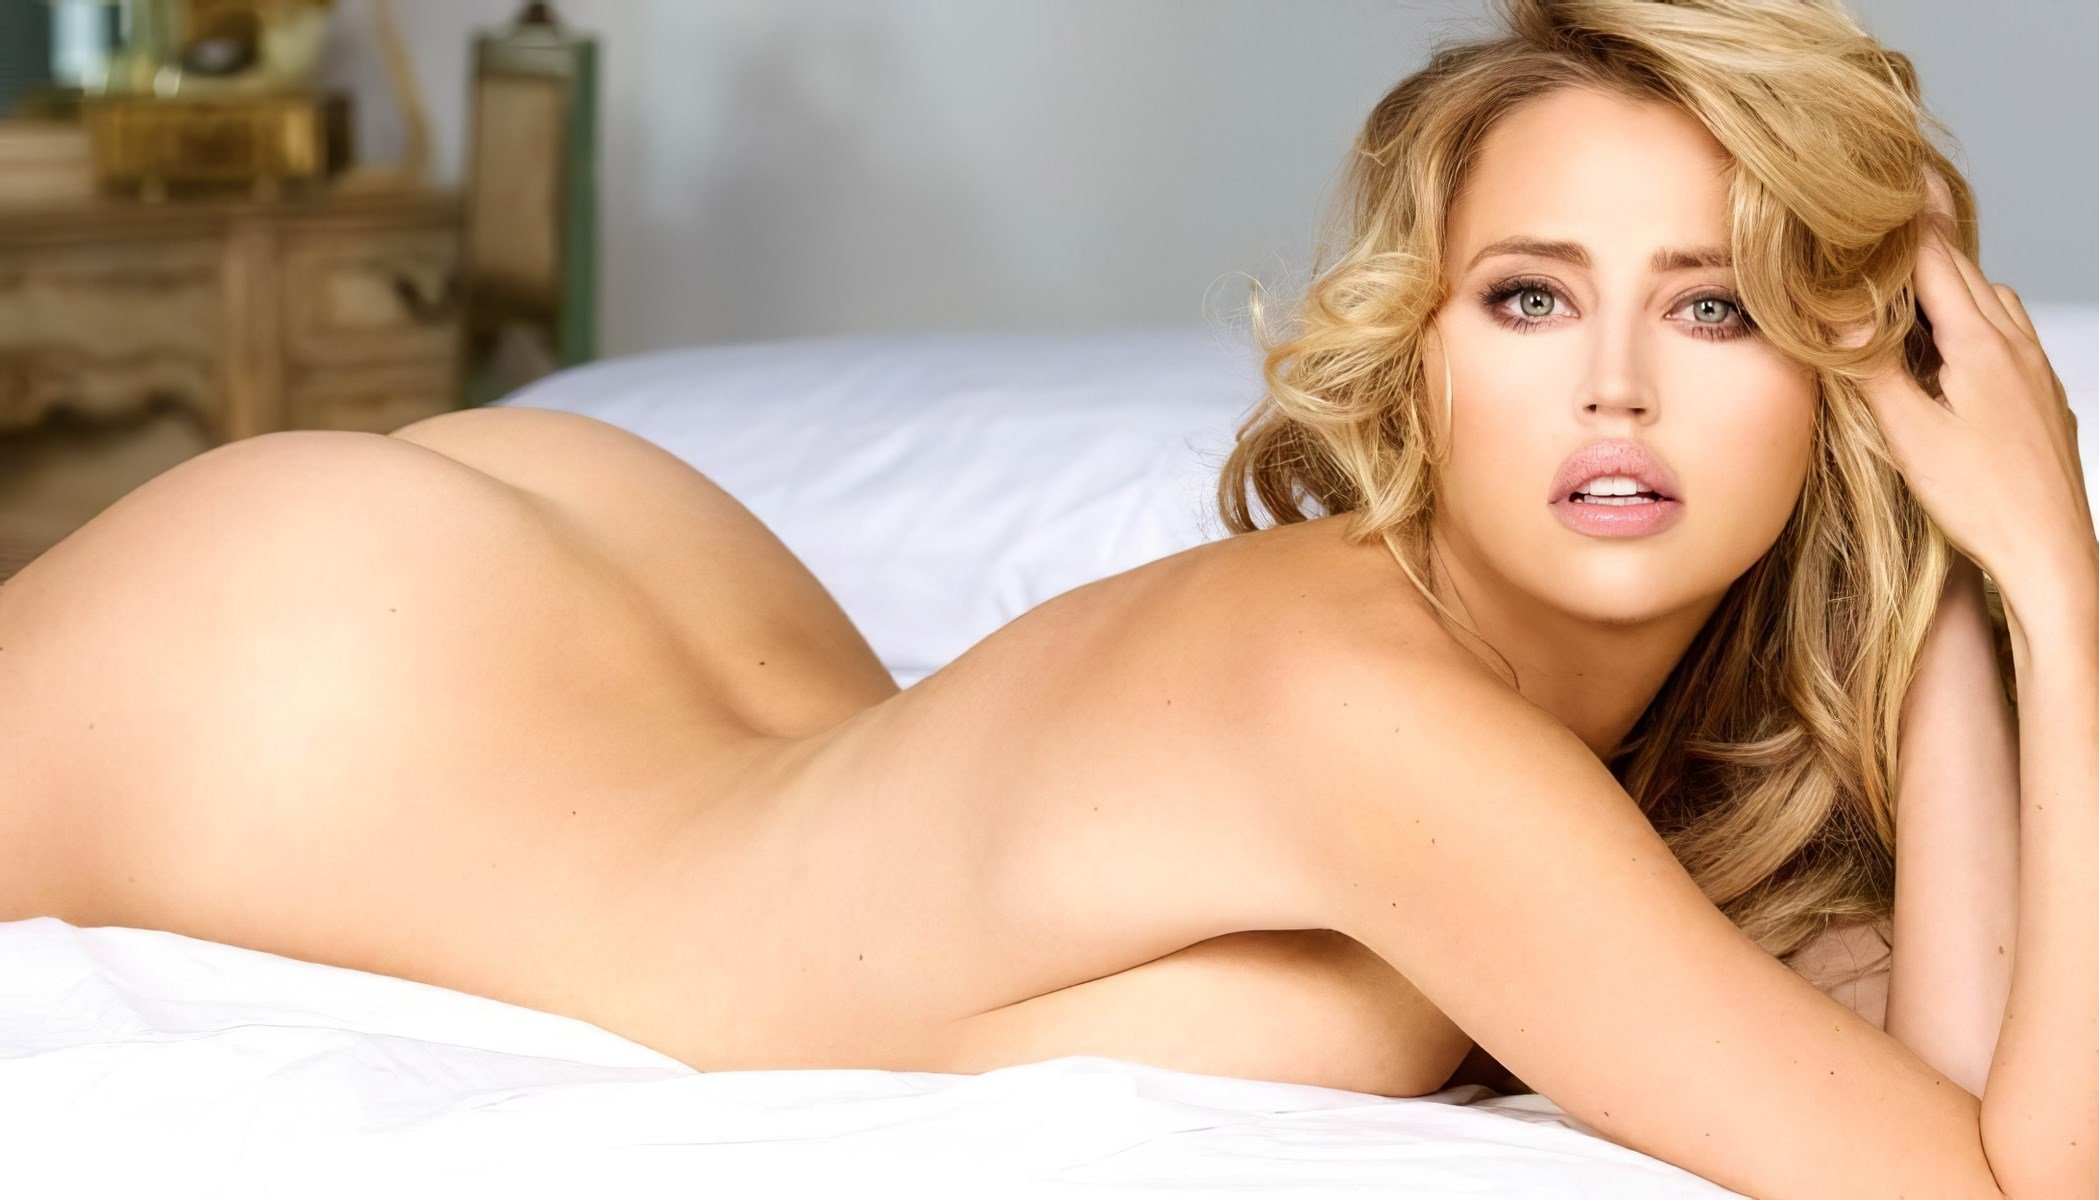 Sexiest porn star in the world